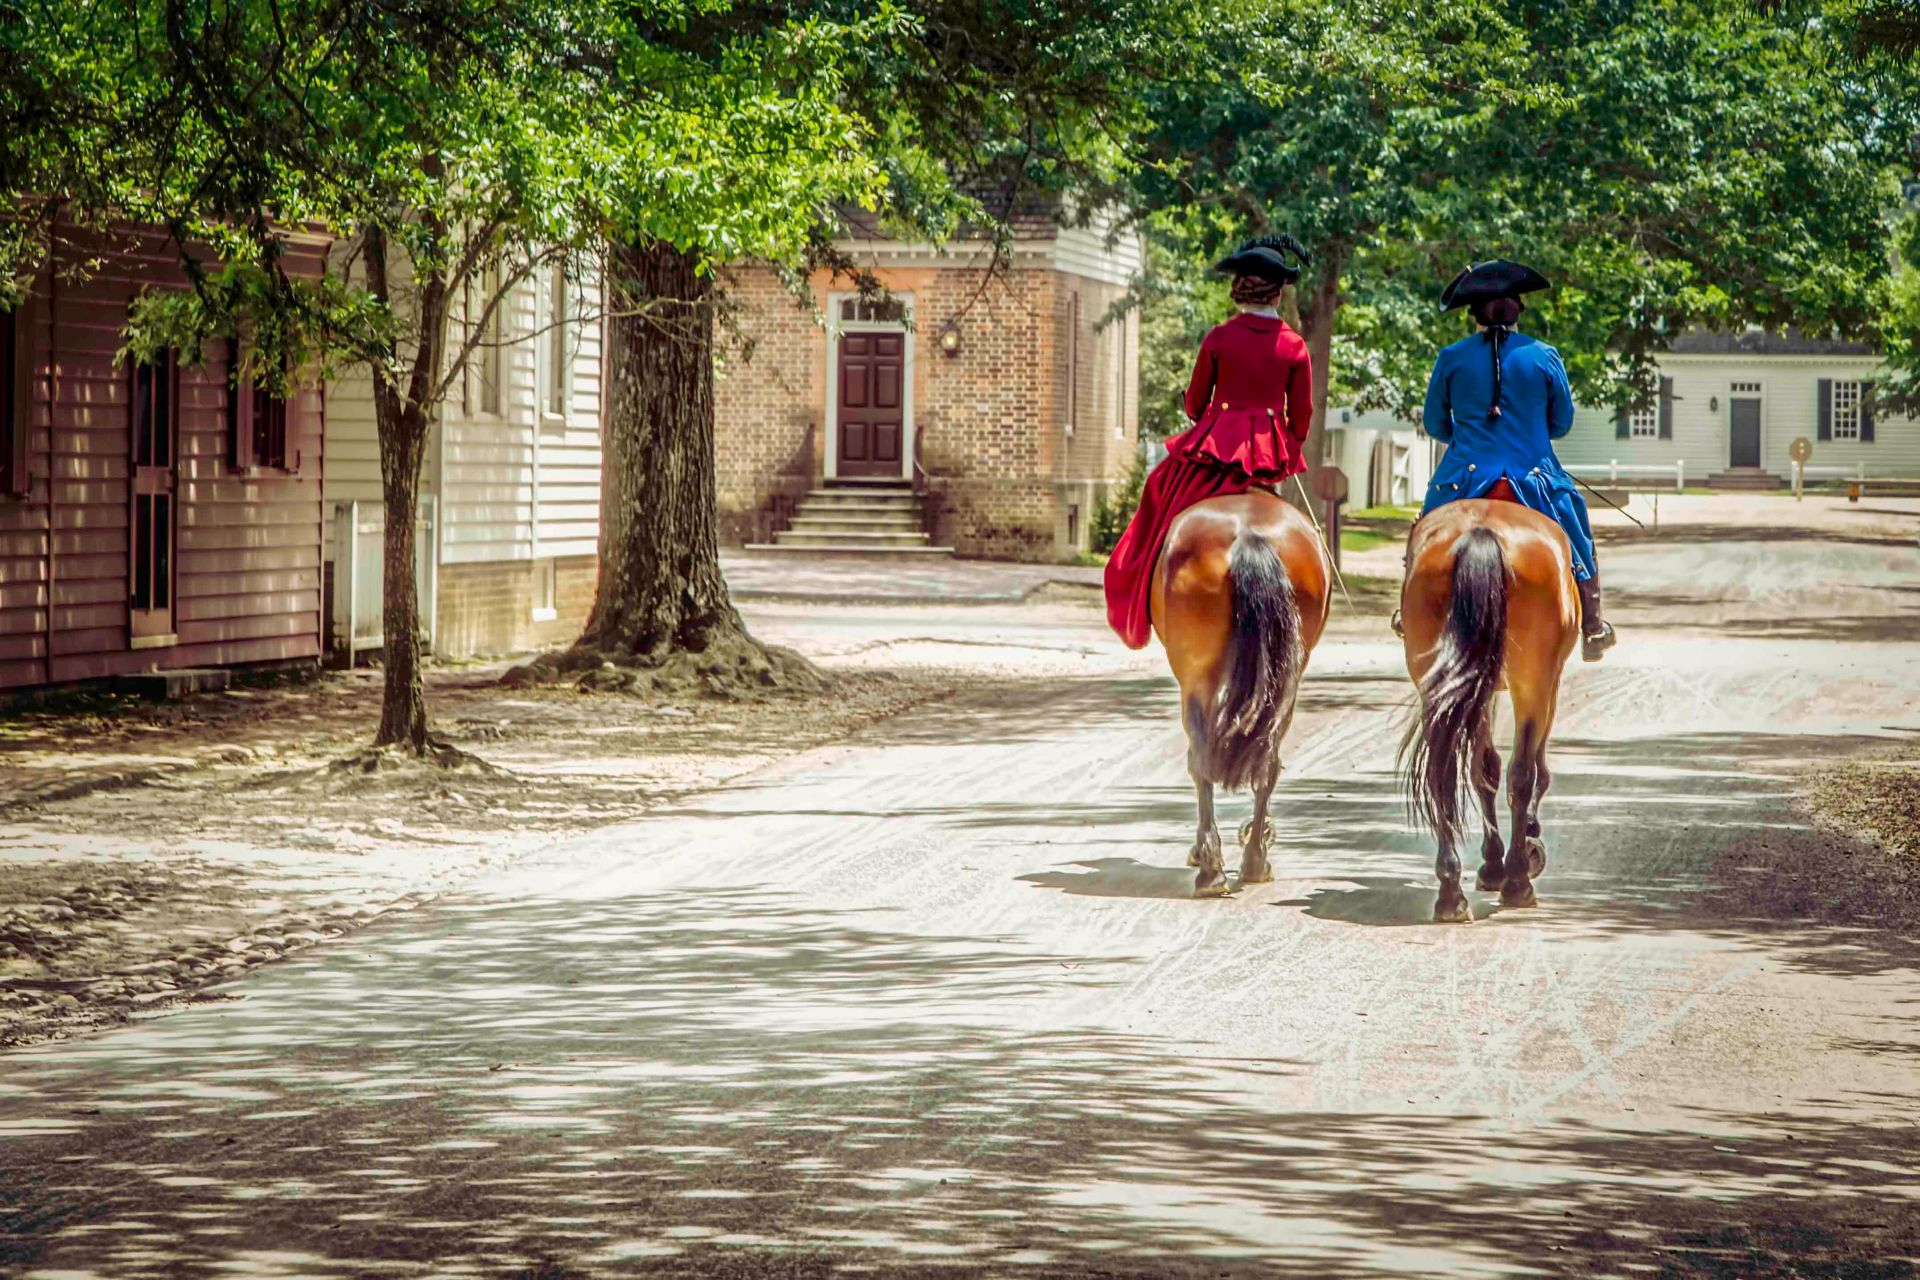 Two residents of Colonial Williamsburg, Virginia on a horseback stroll through town.